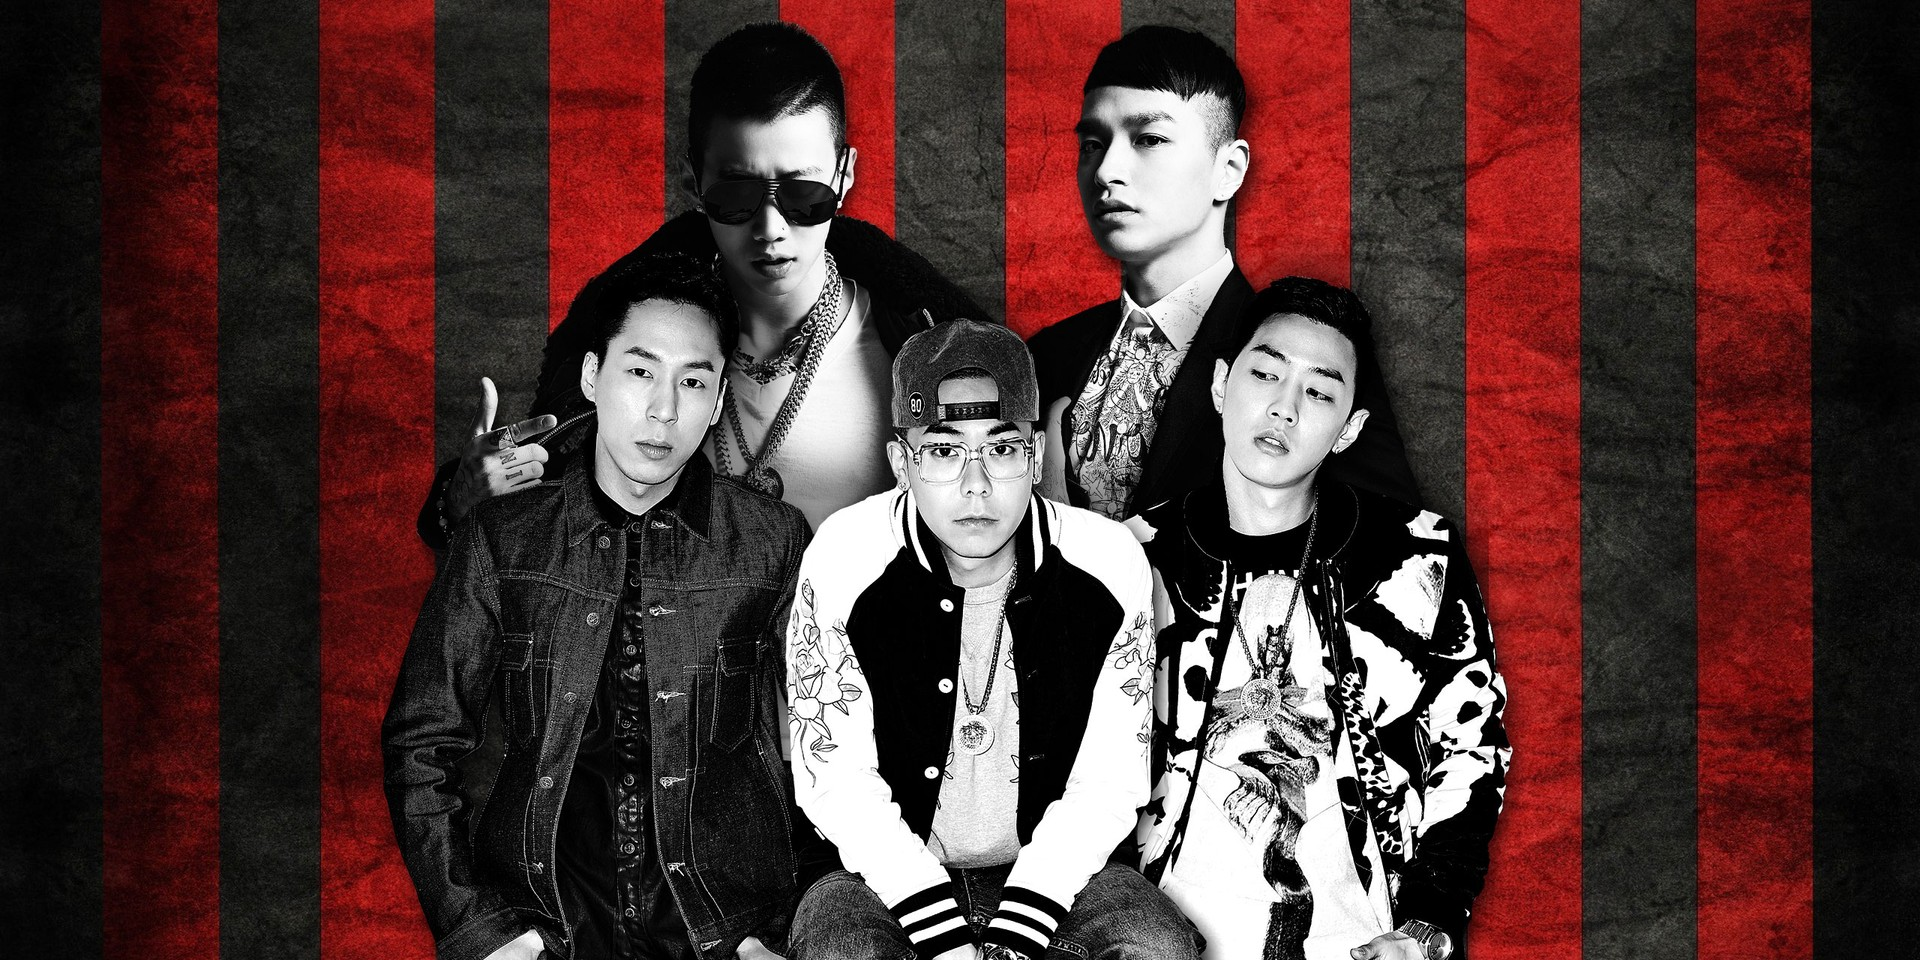 South Korea's meteoric hip-hop/R&B collective AOMG to perform in Singapore